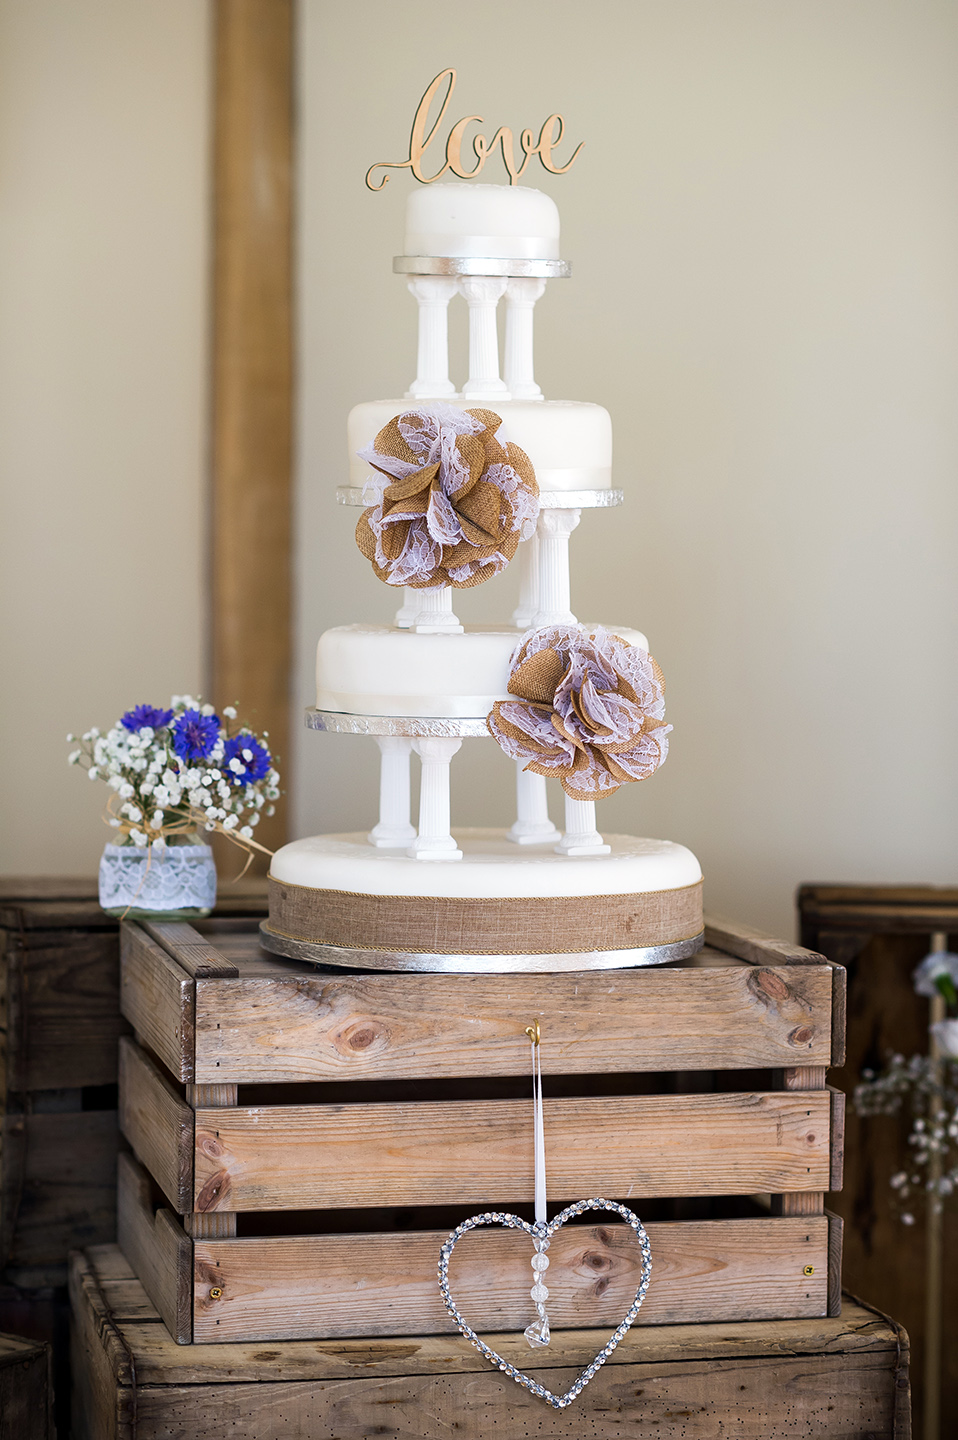 The couple had a three-tier wedding cake decorated to complement their rustic wedding theme